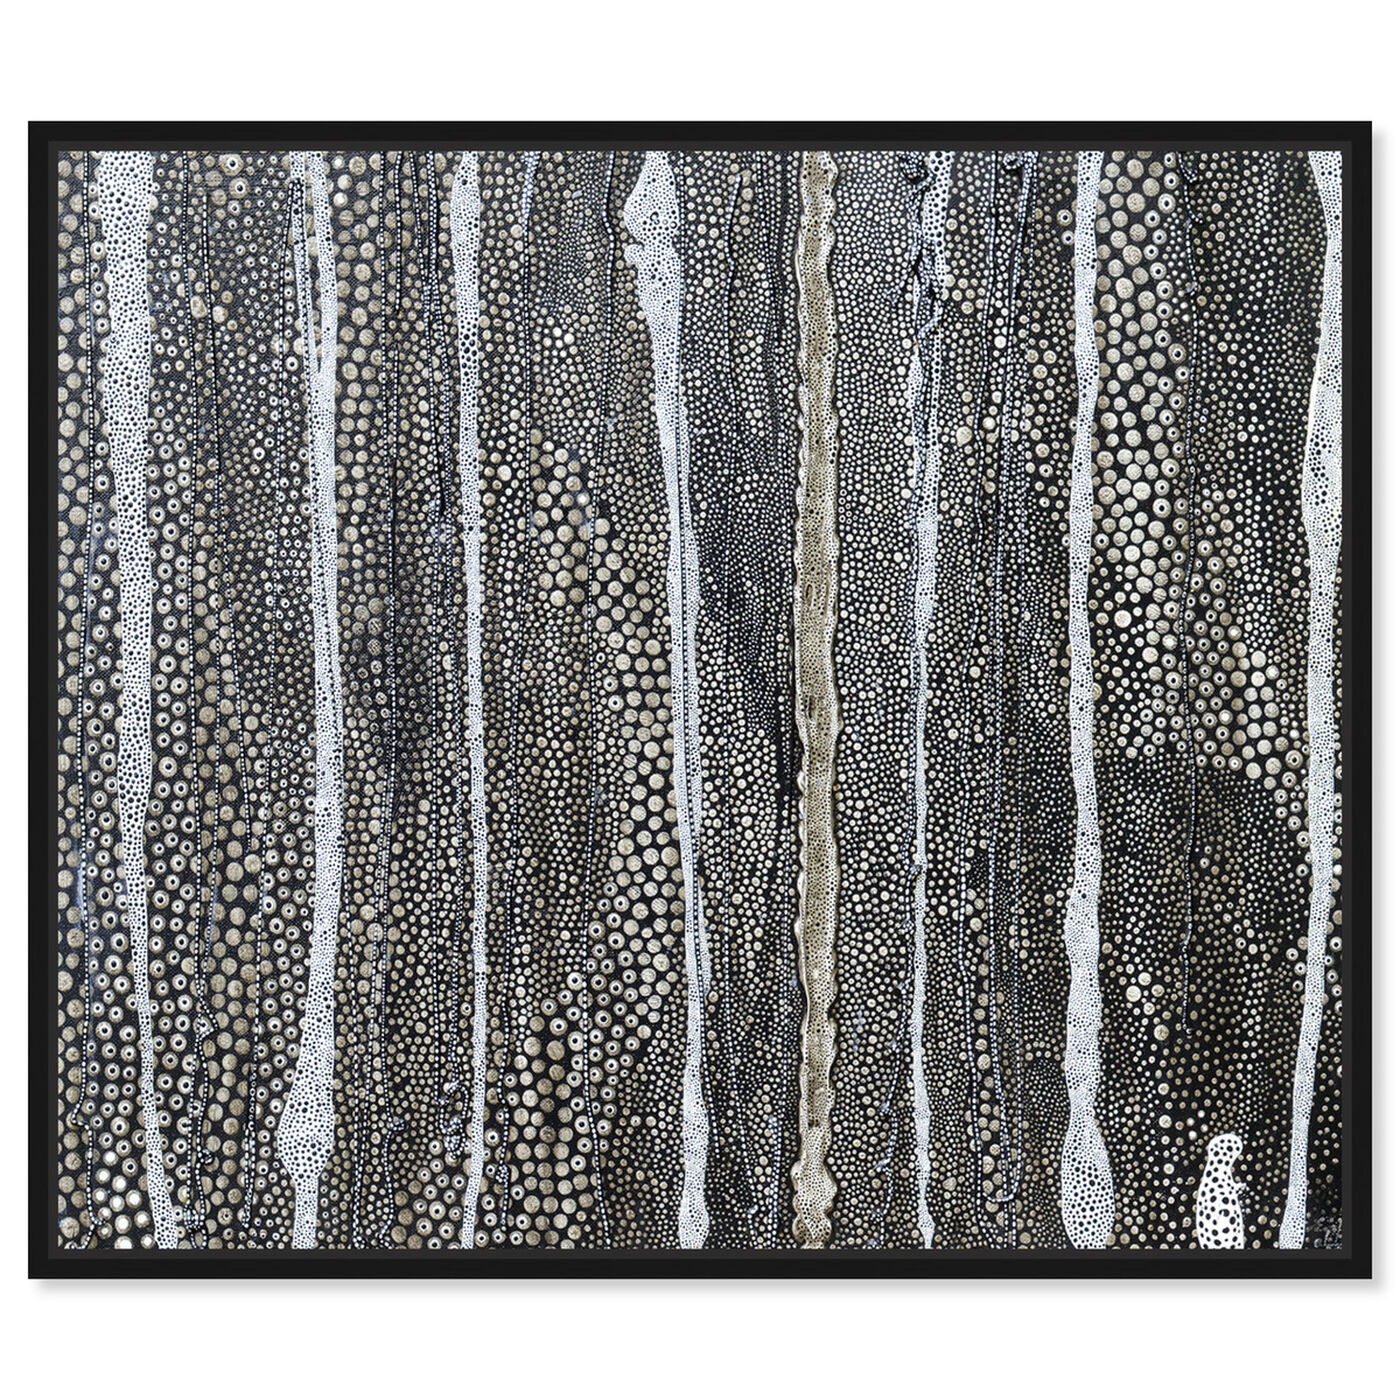 Front view of Enriqueta Ahrensburg - Black and white featuring abstract and textures art.